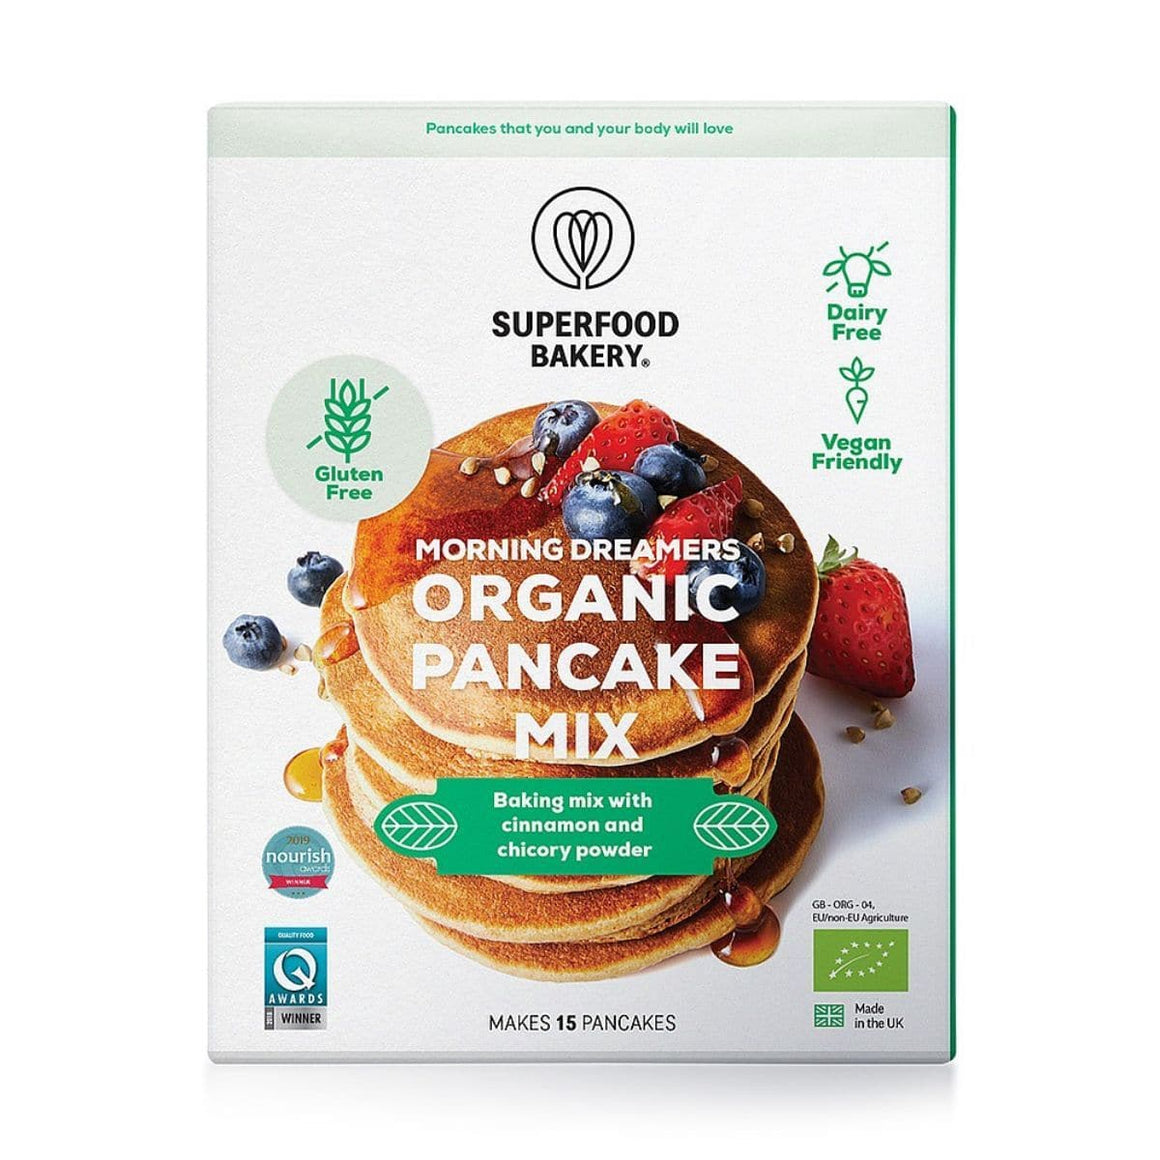 Superfood Bakery Morning Dreamers Organic Pancake Mix - 200g